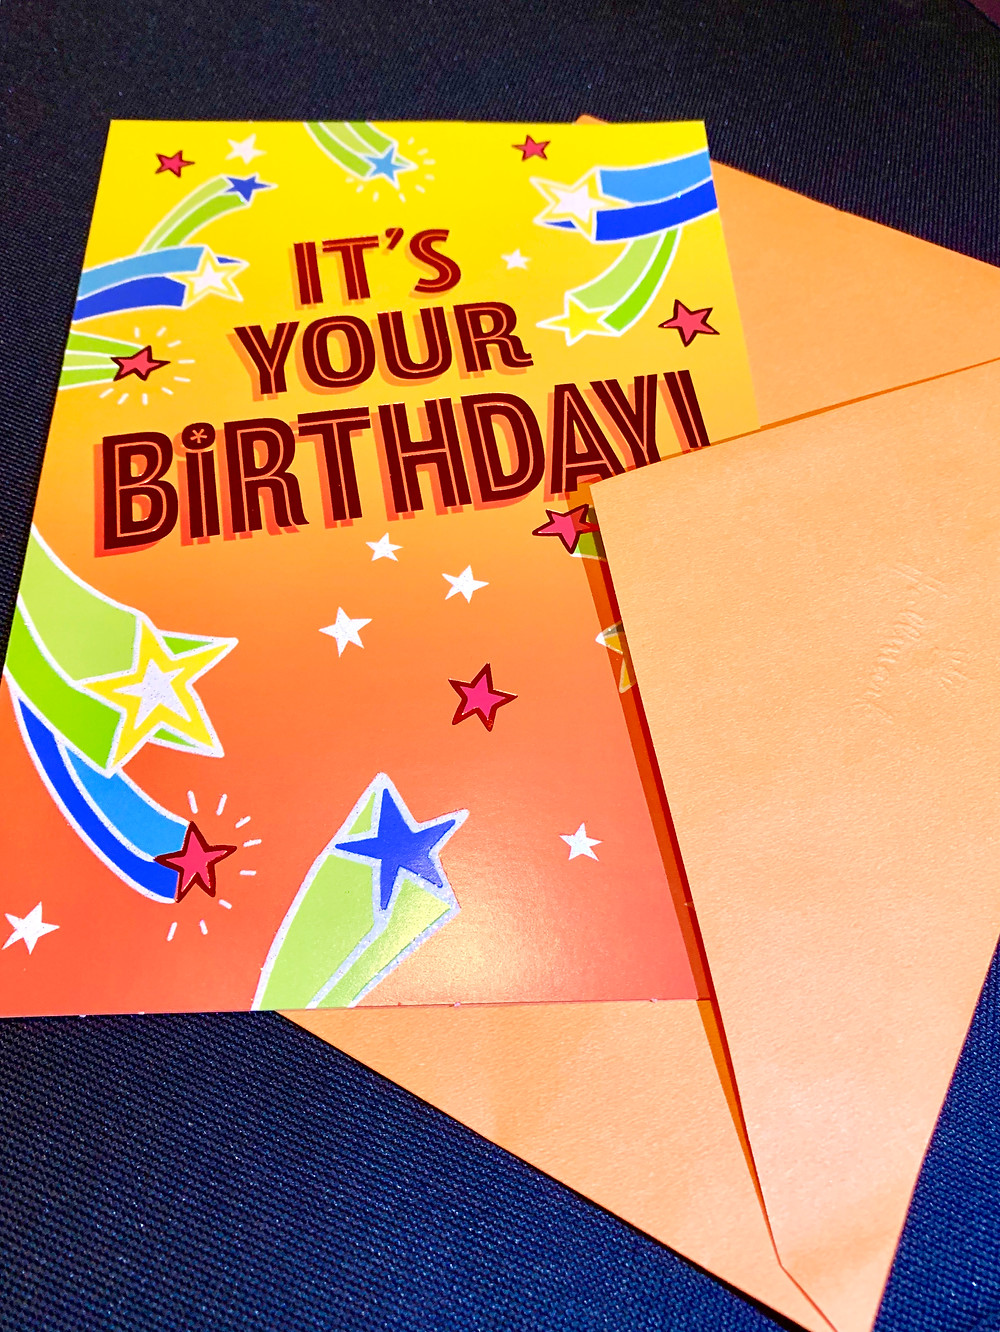 It is a yellow birthday card that says It's Your Birthday